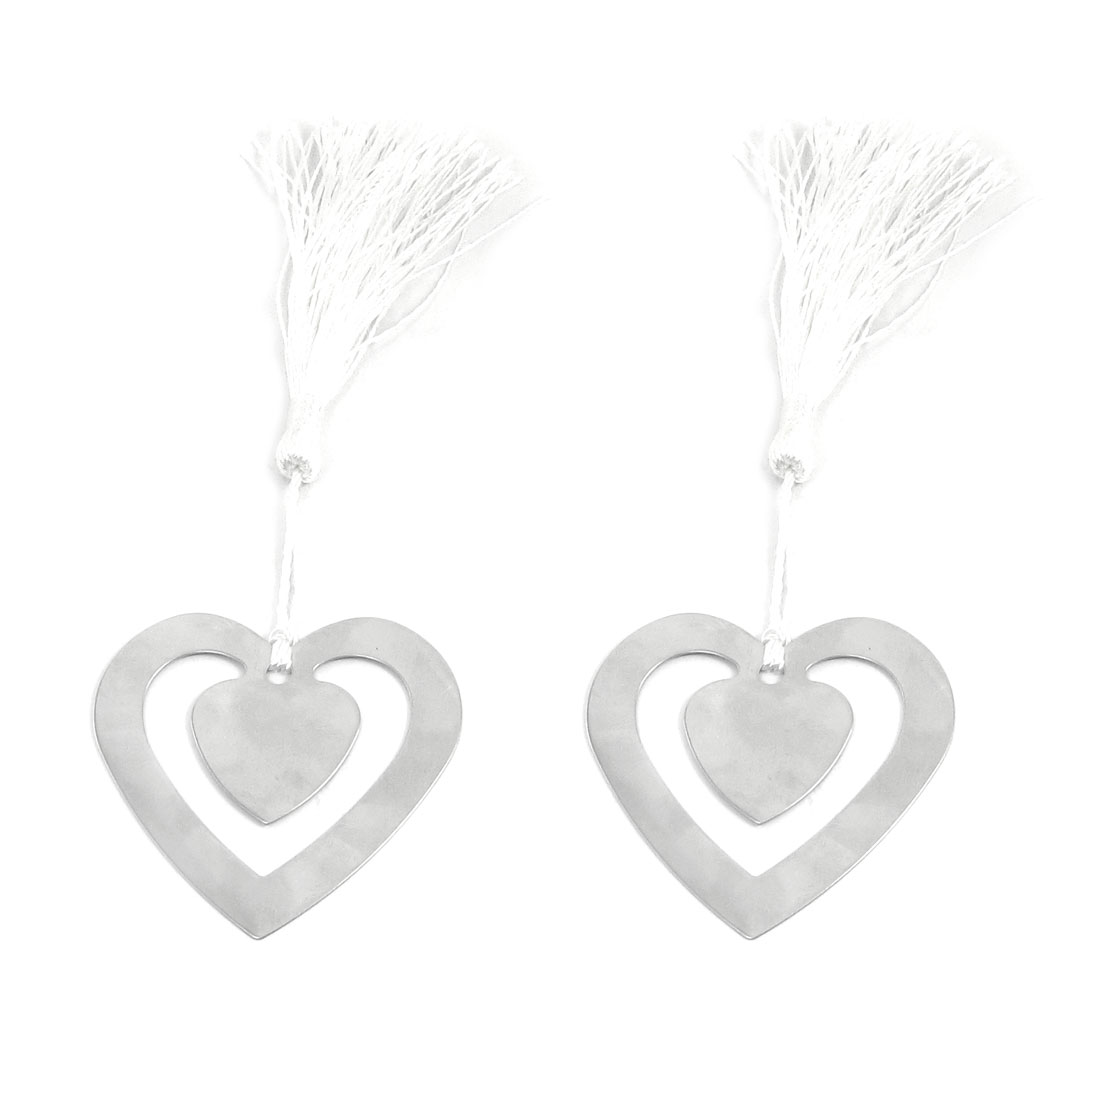 2pcs White Tassel Decor Heart Shape Page Holder Bookmark for Reader